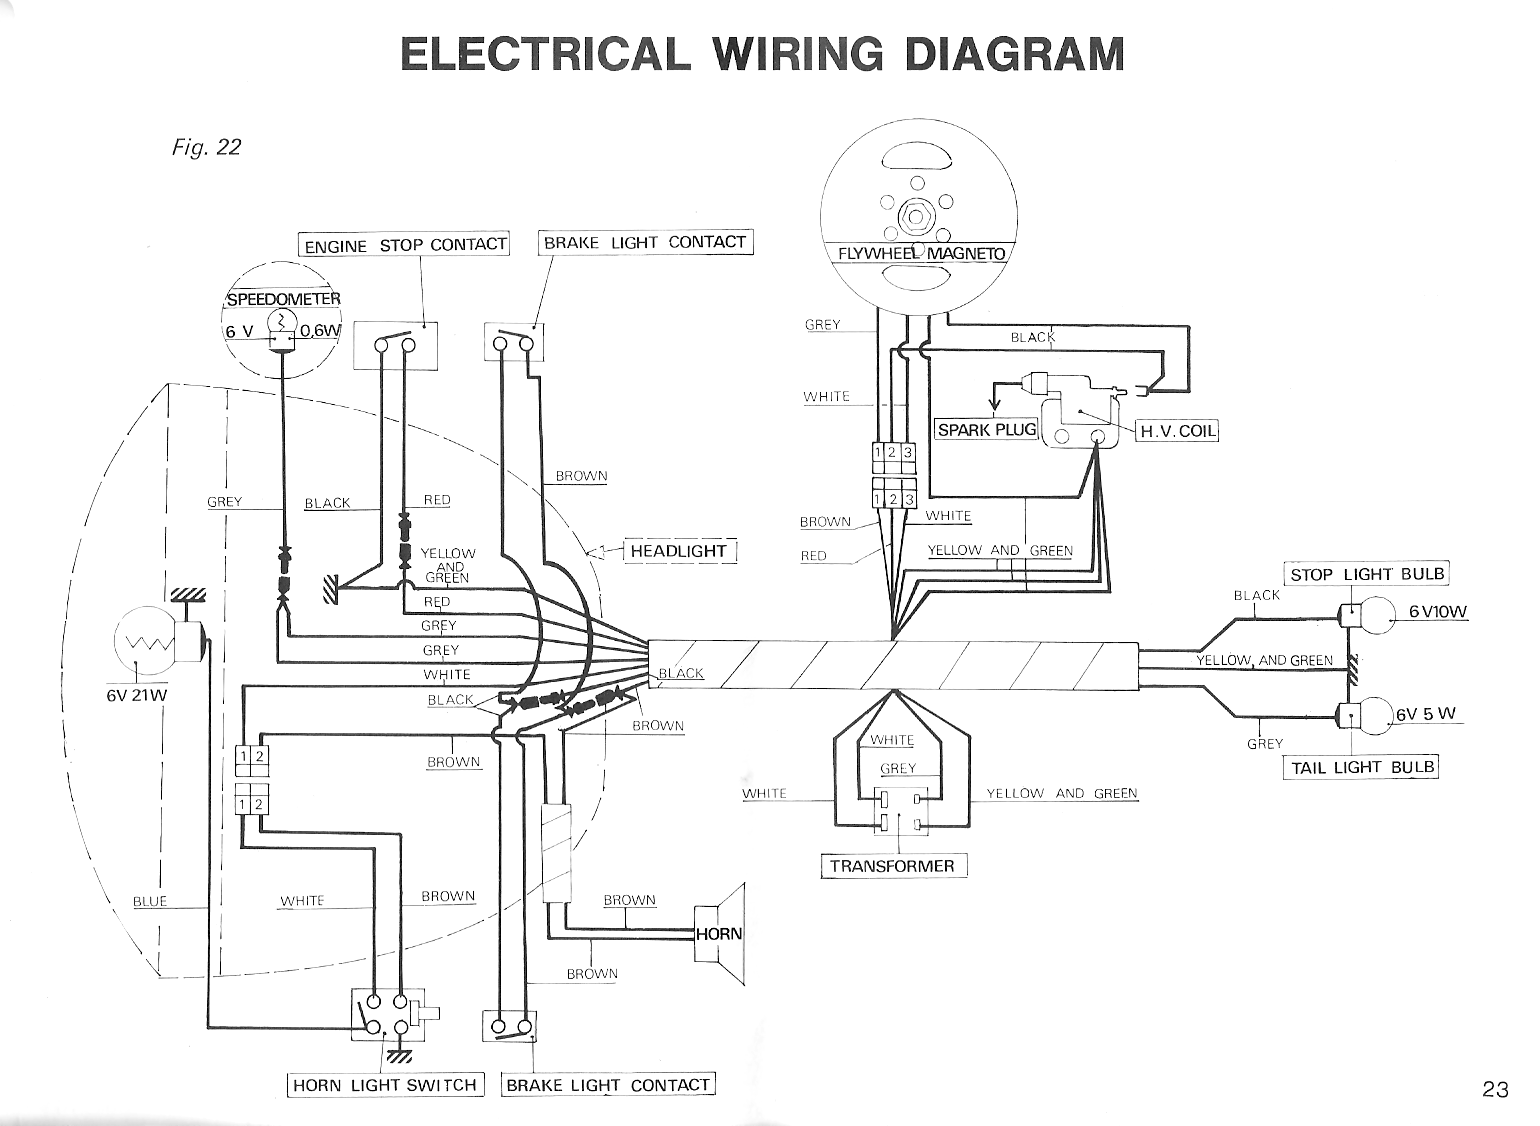 Peugeot wiring diagrams - Moped Wiki